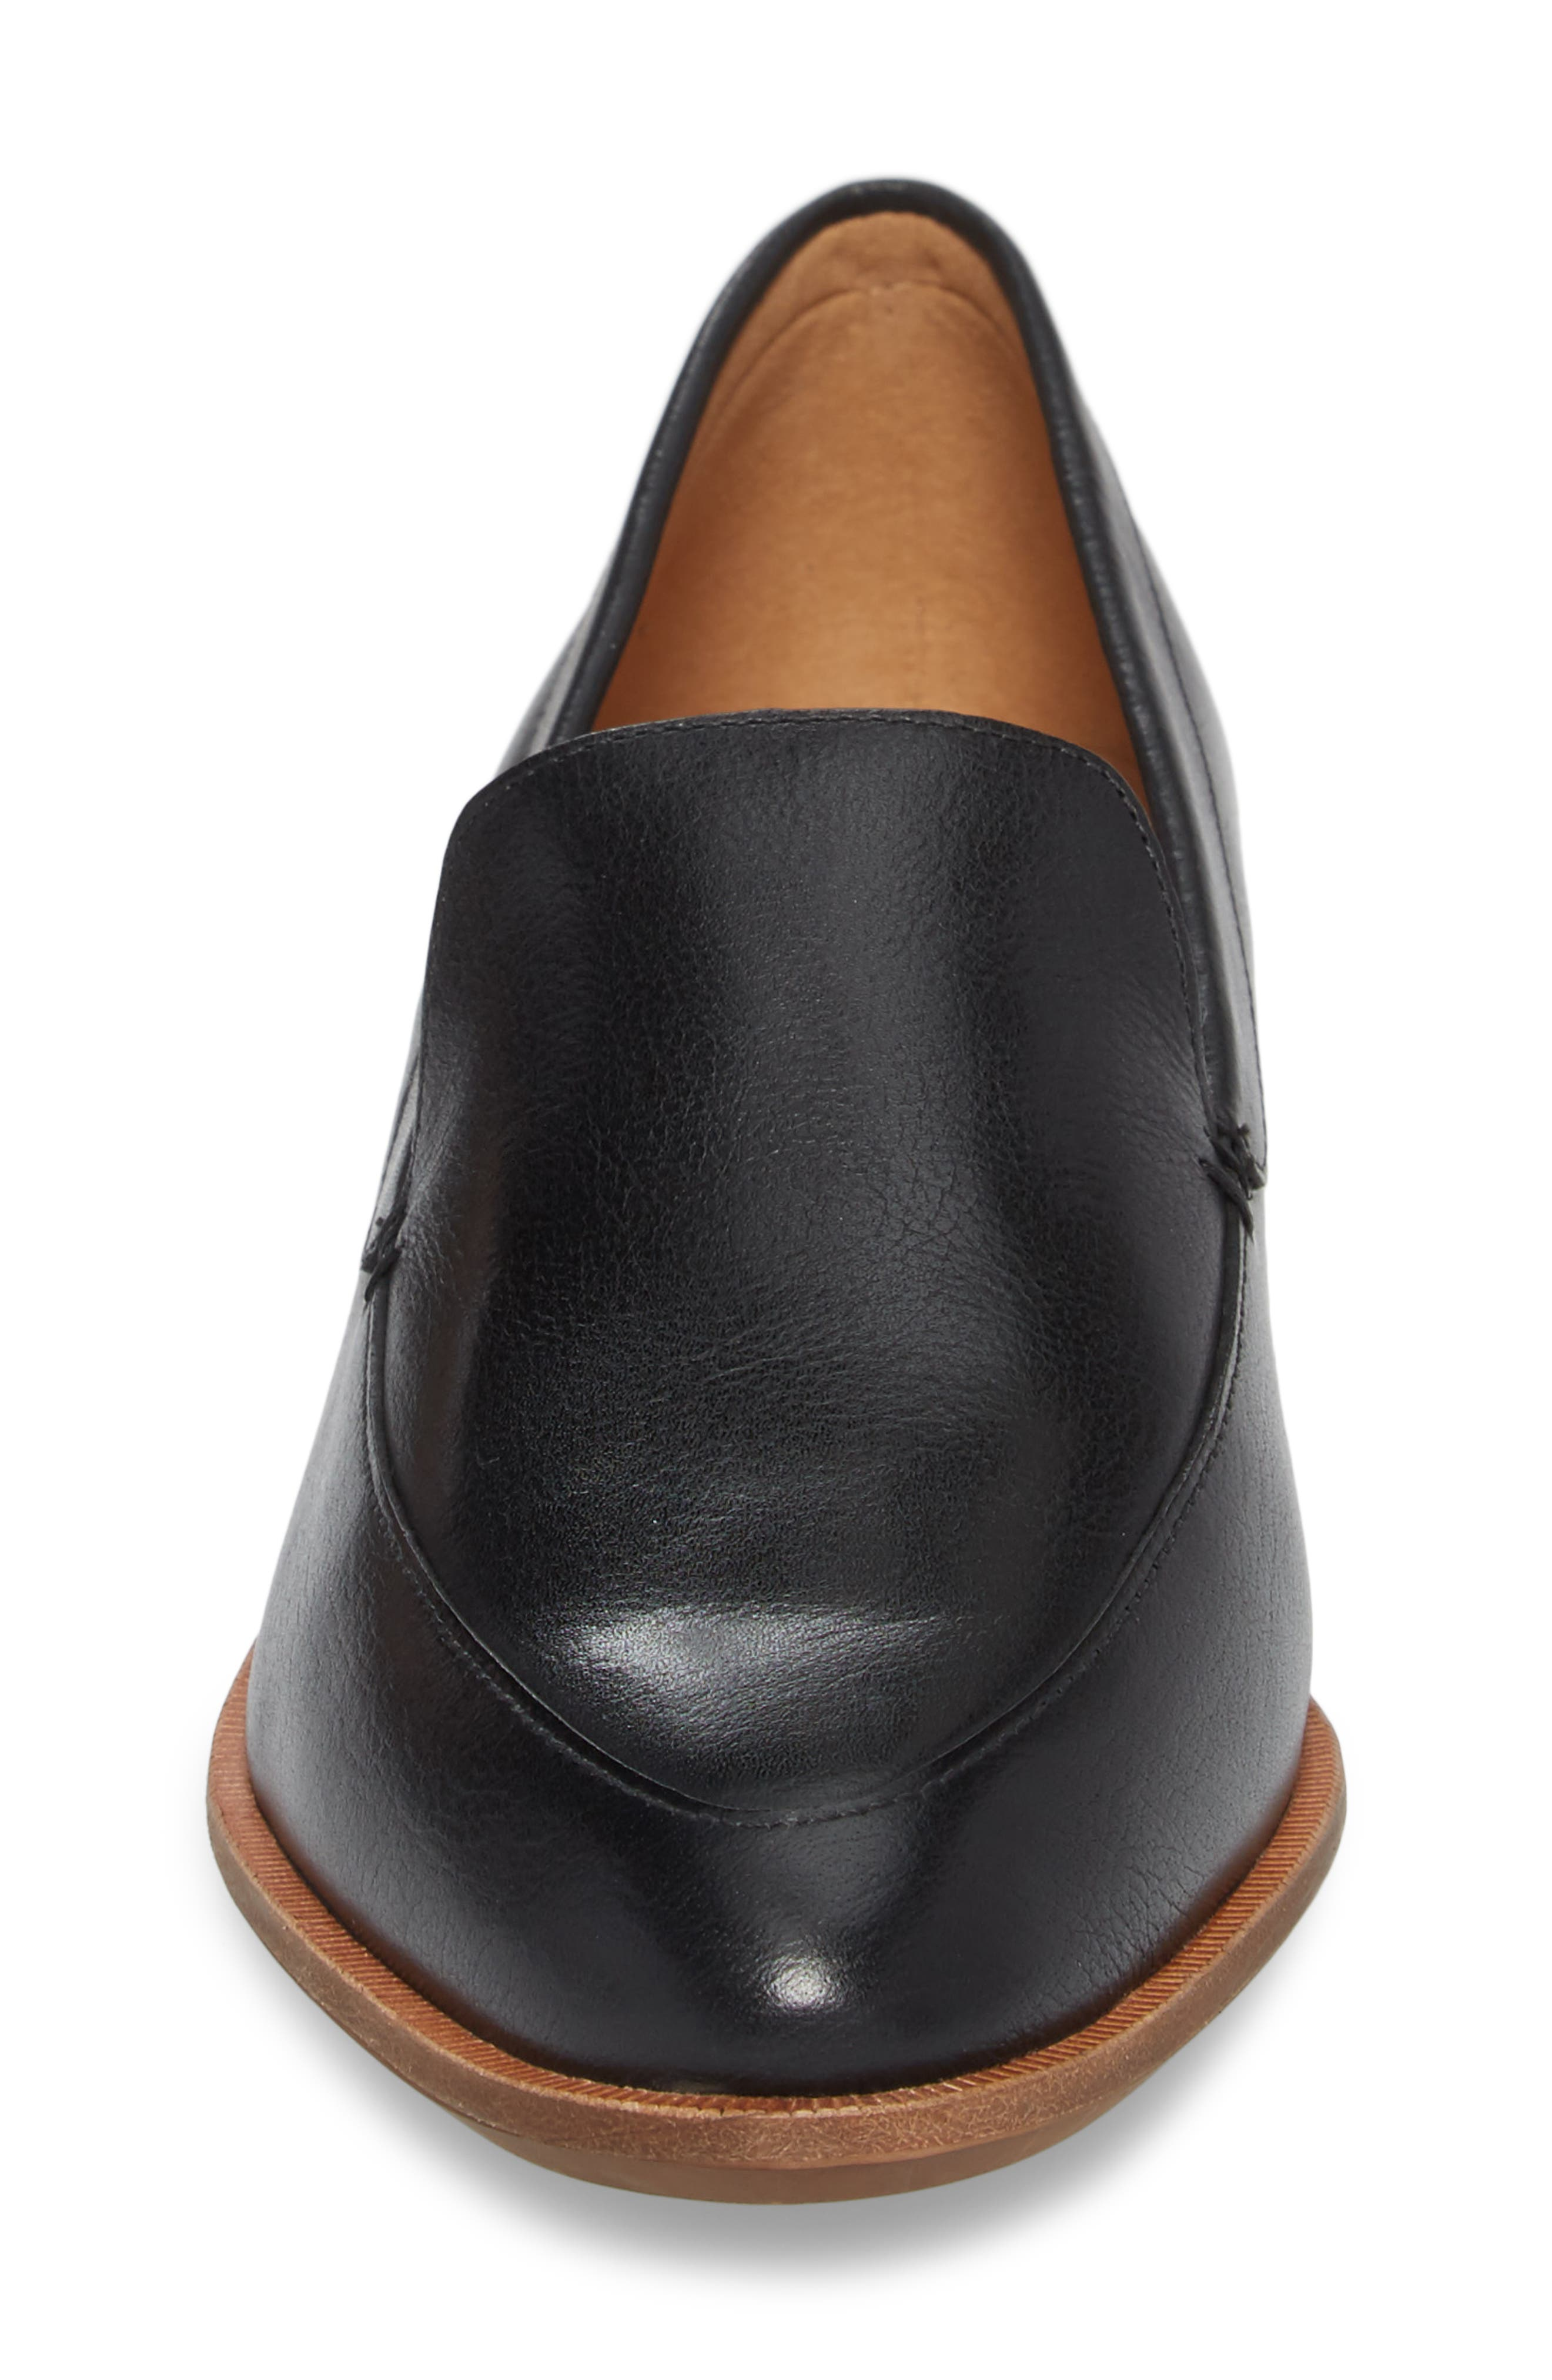 MADEWELL,                             The Frances Loafer,                             Alternate thumbnail 4, color,                             TRUE BLACK LEATHER